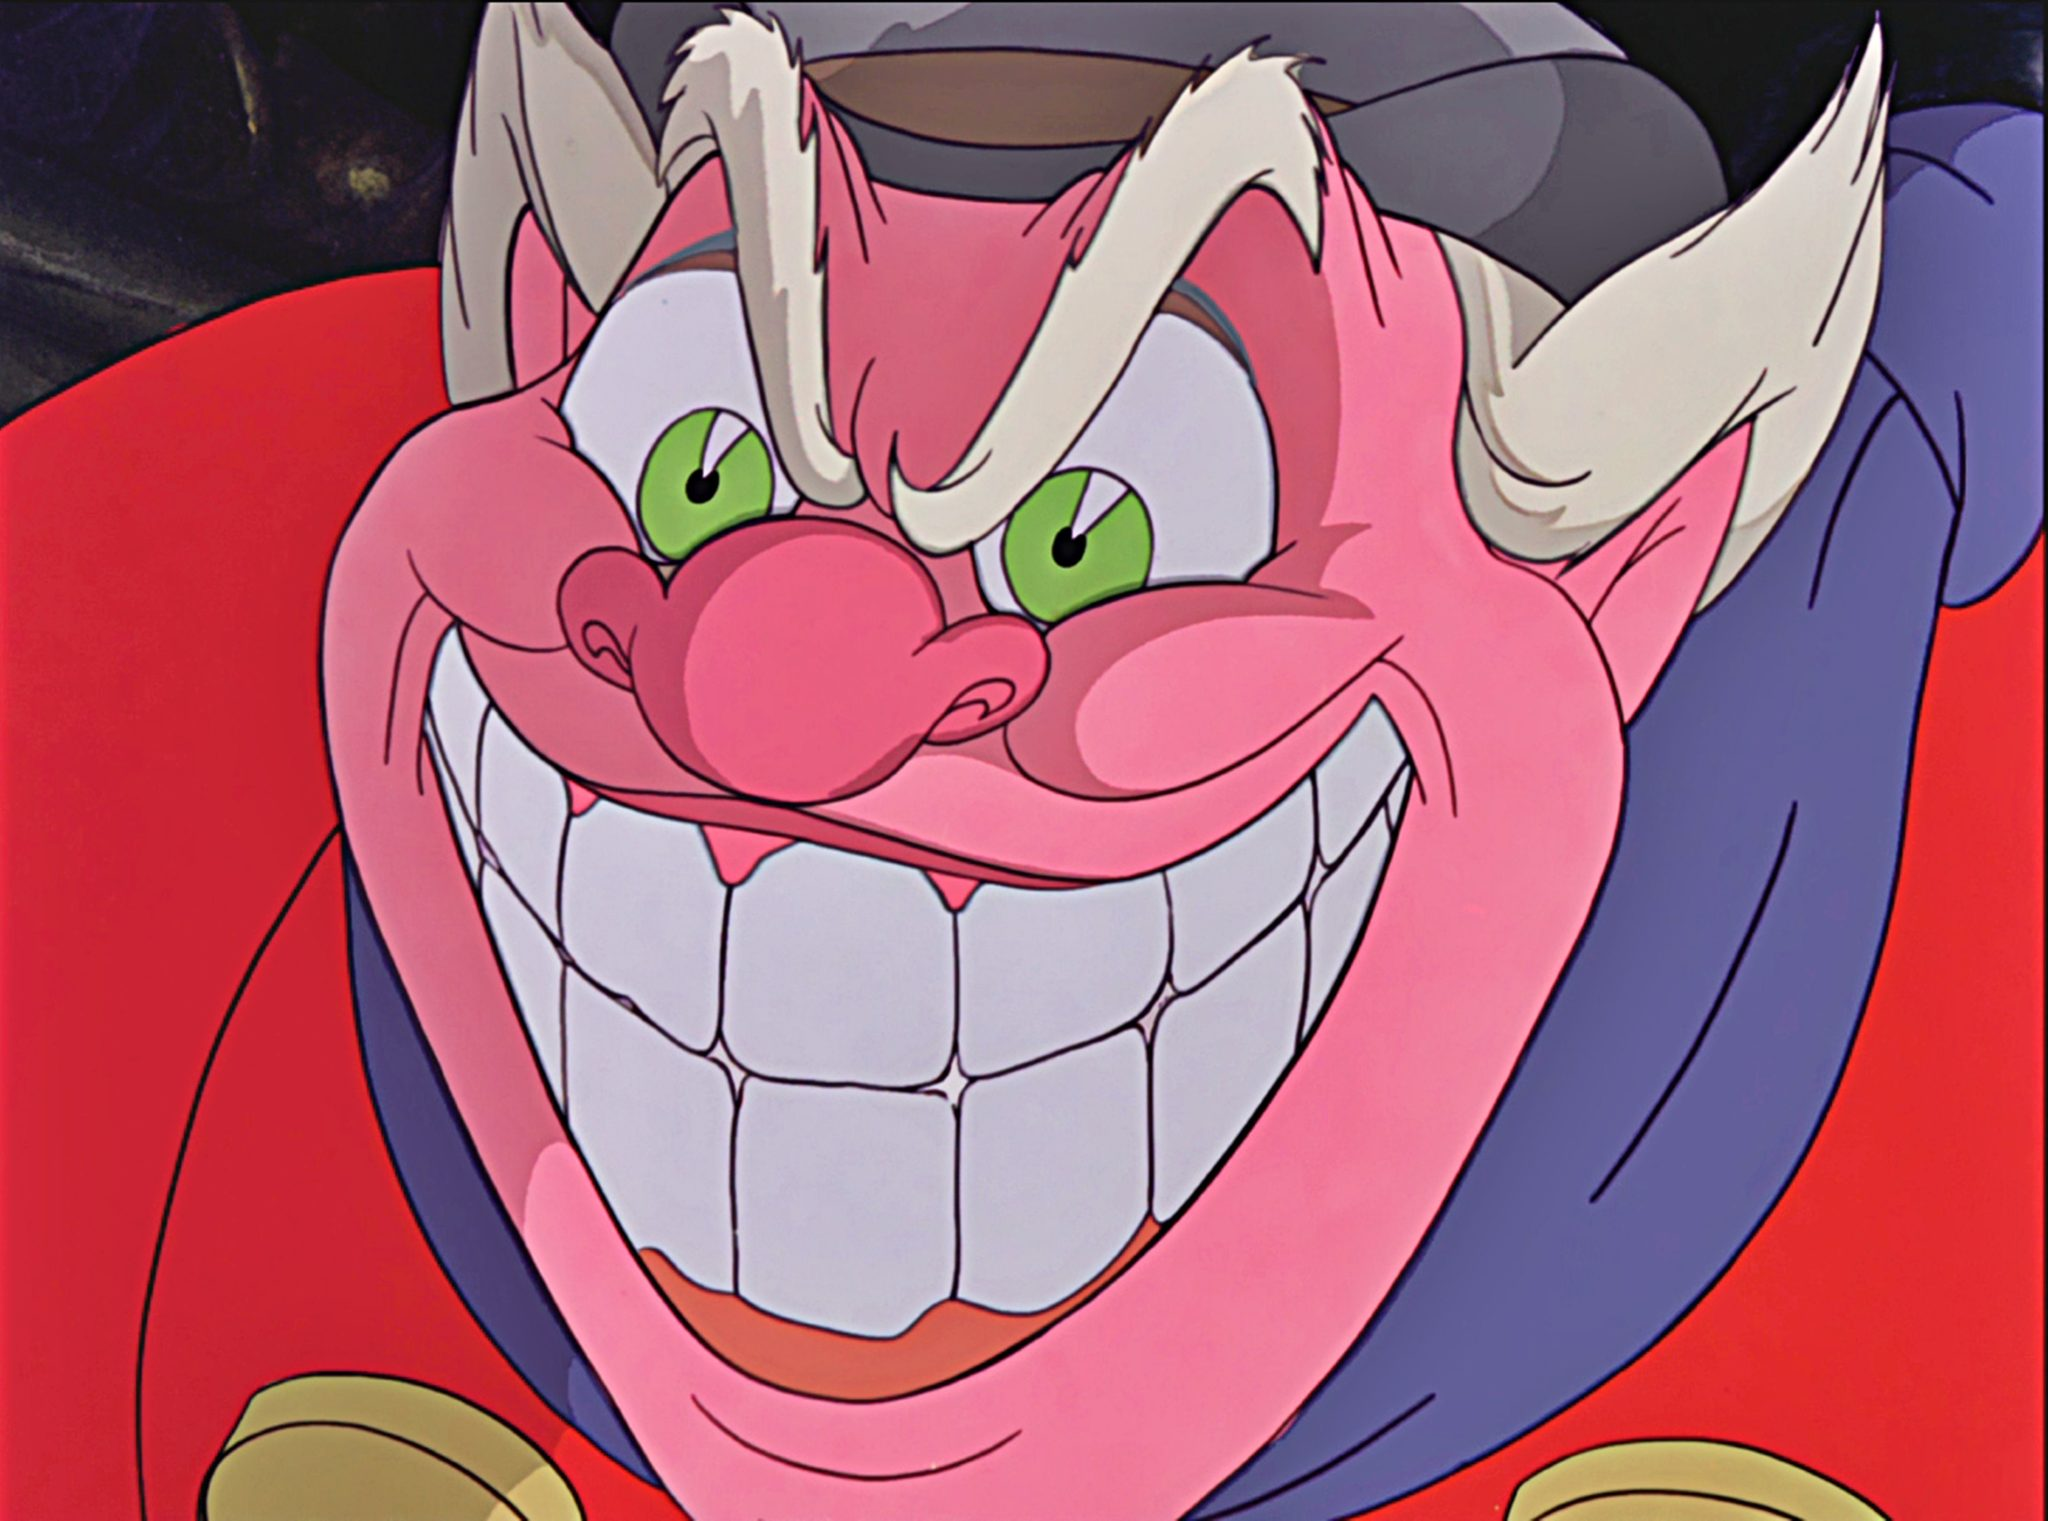 30 Of The Scariest Villains From Kids Movies That Still Haunt Us Today